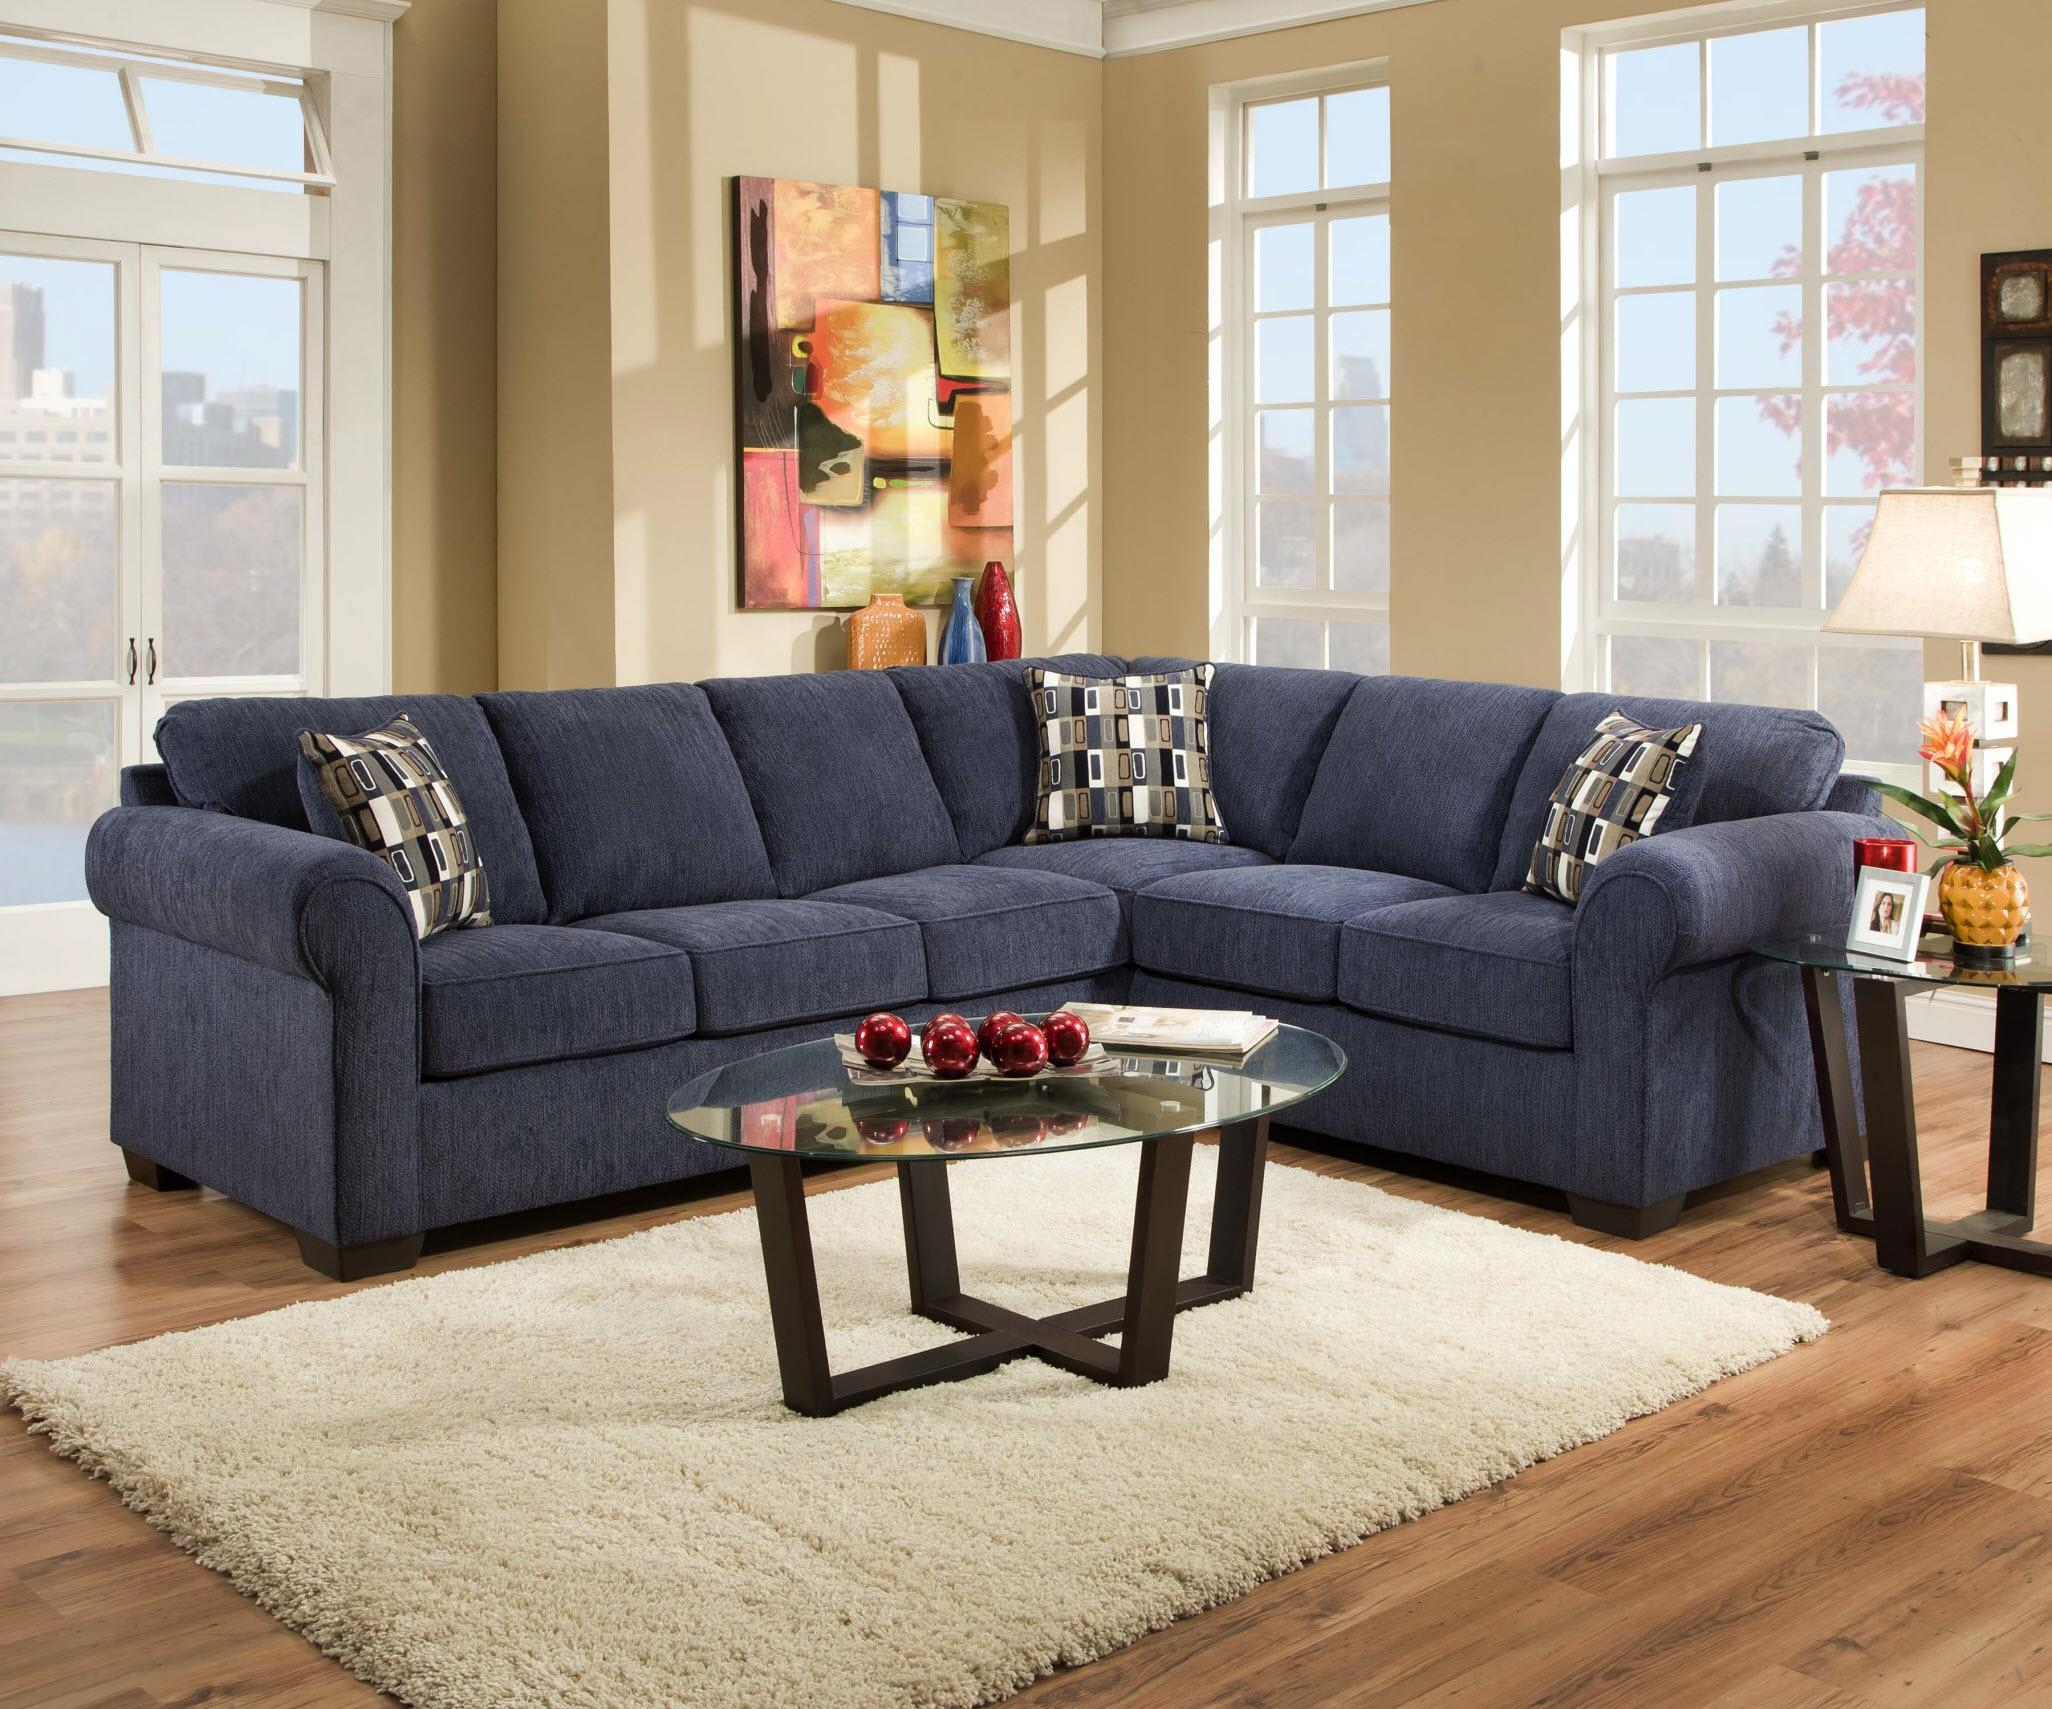 Download Project Ideas Dark Blue Sofas | Allconstructionchemicals Throughout Dark Blue Sofas (Image 8 of 20)